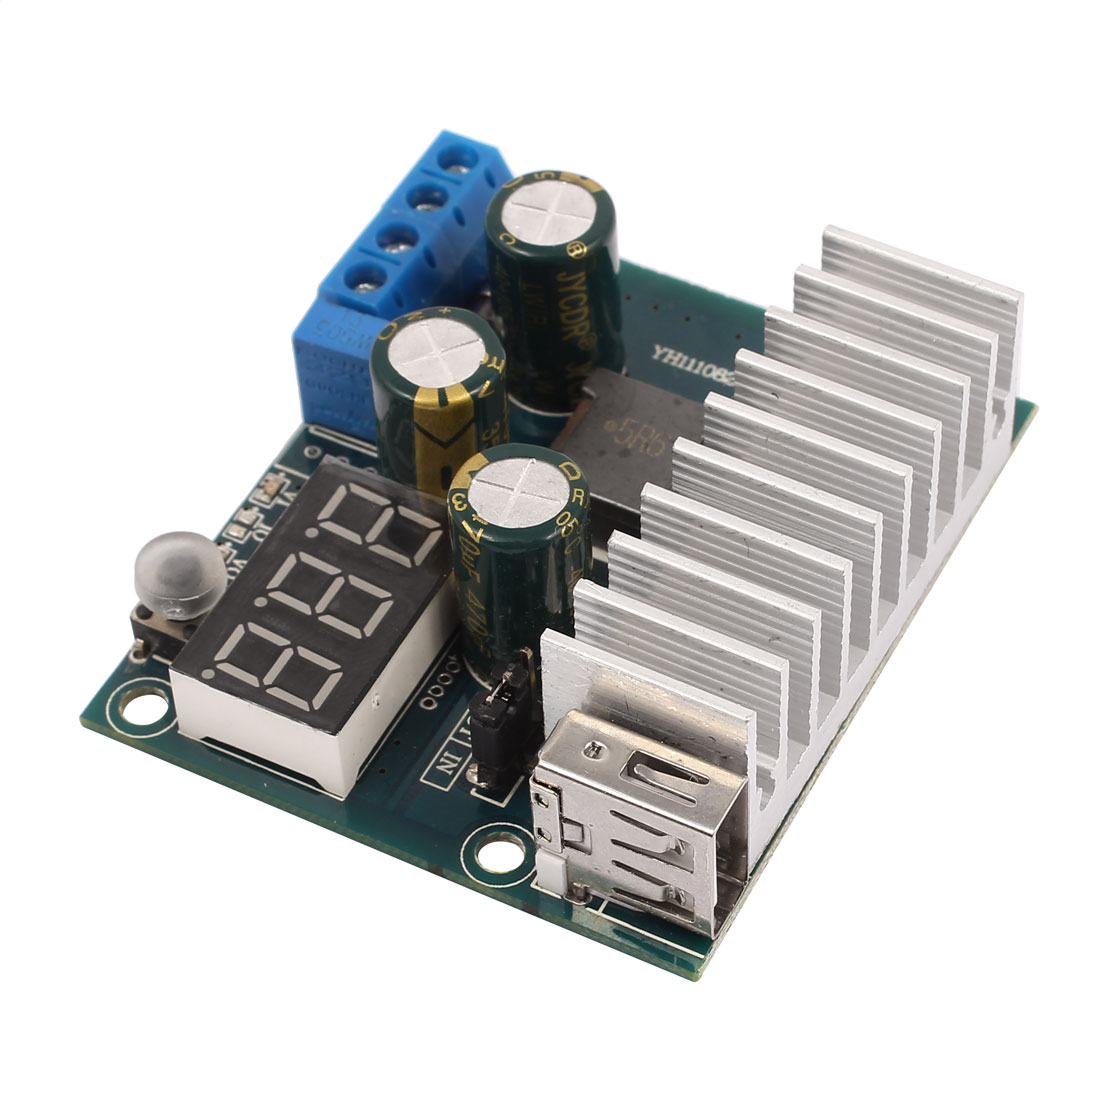 DC 3-35V To DC 3-35V Stable Step-up Module With Digital LED Display